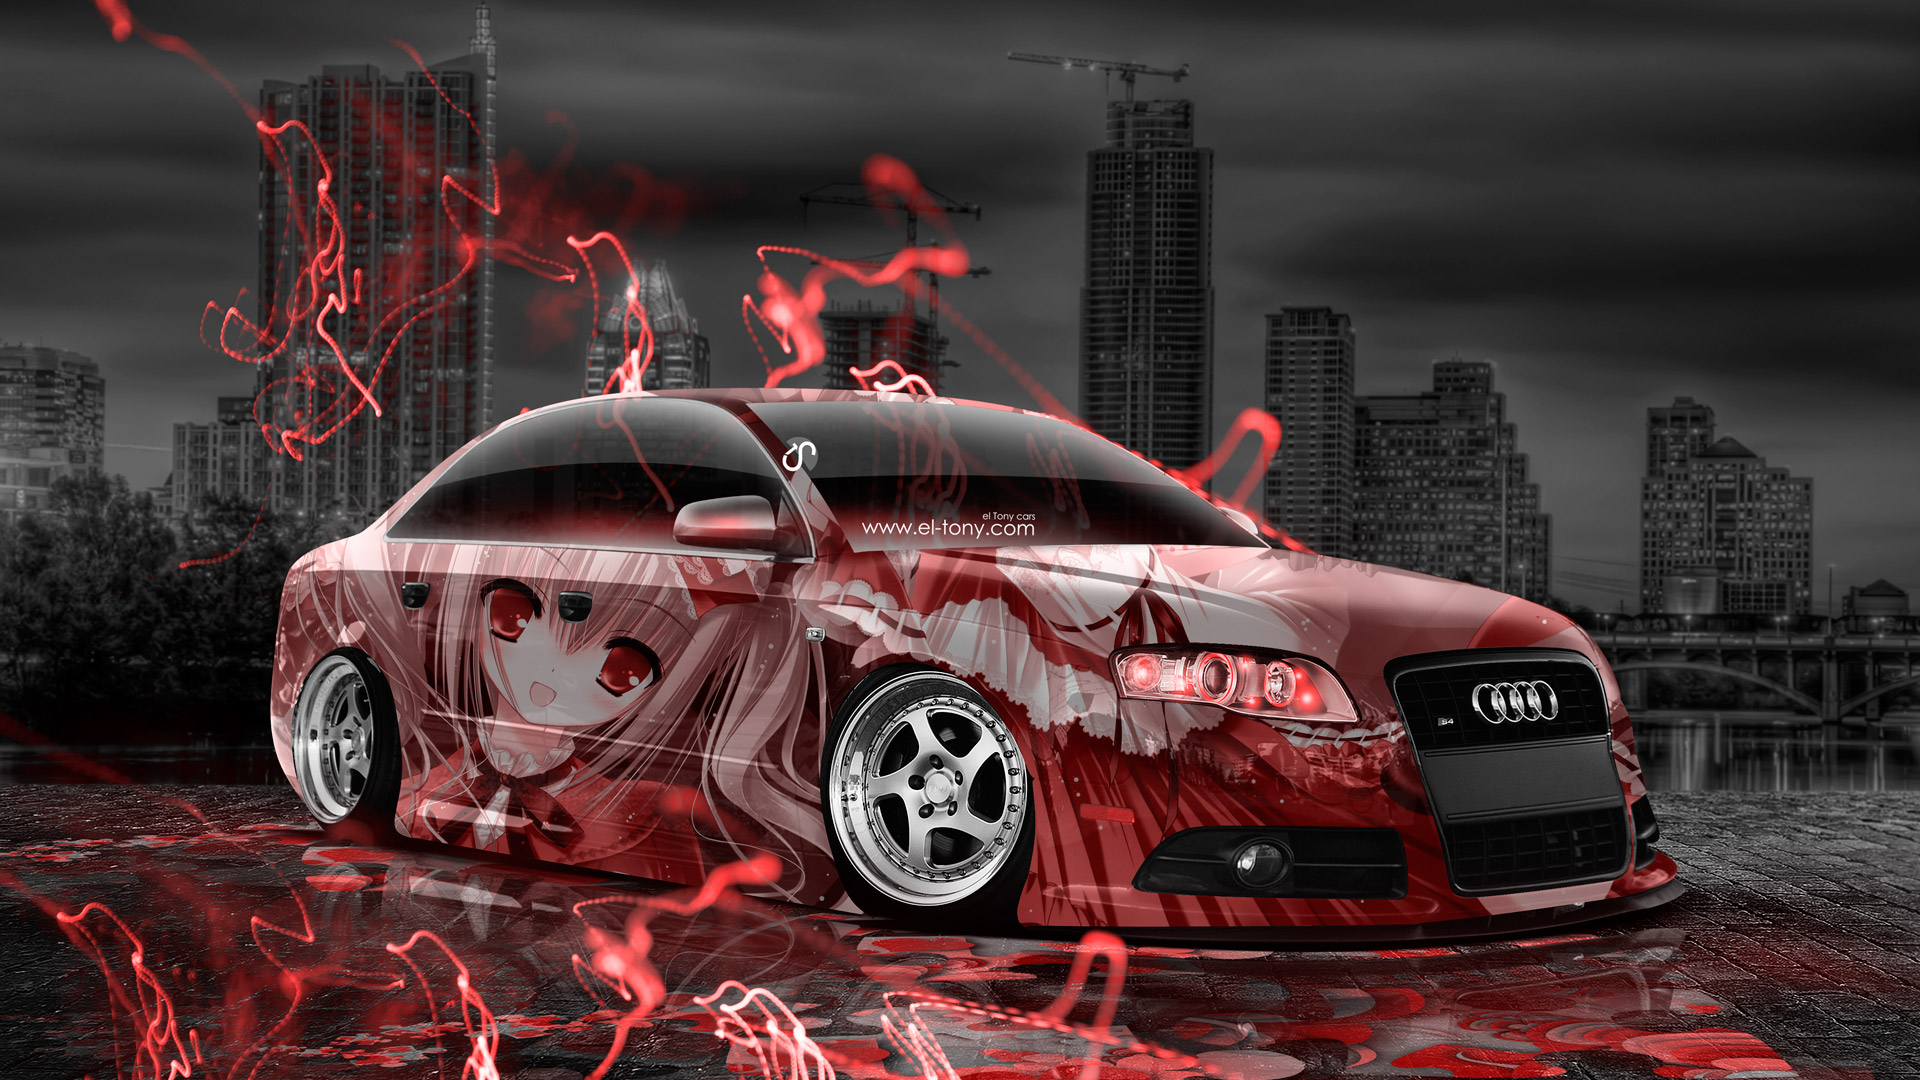 Girls Wallpapers 2015: Audi S4 Tuning Anime Aerography City Car 2015